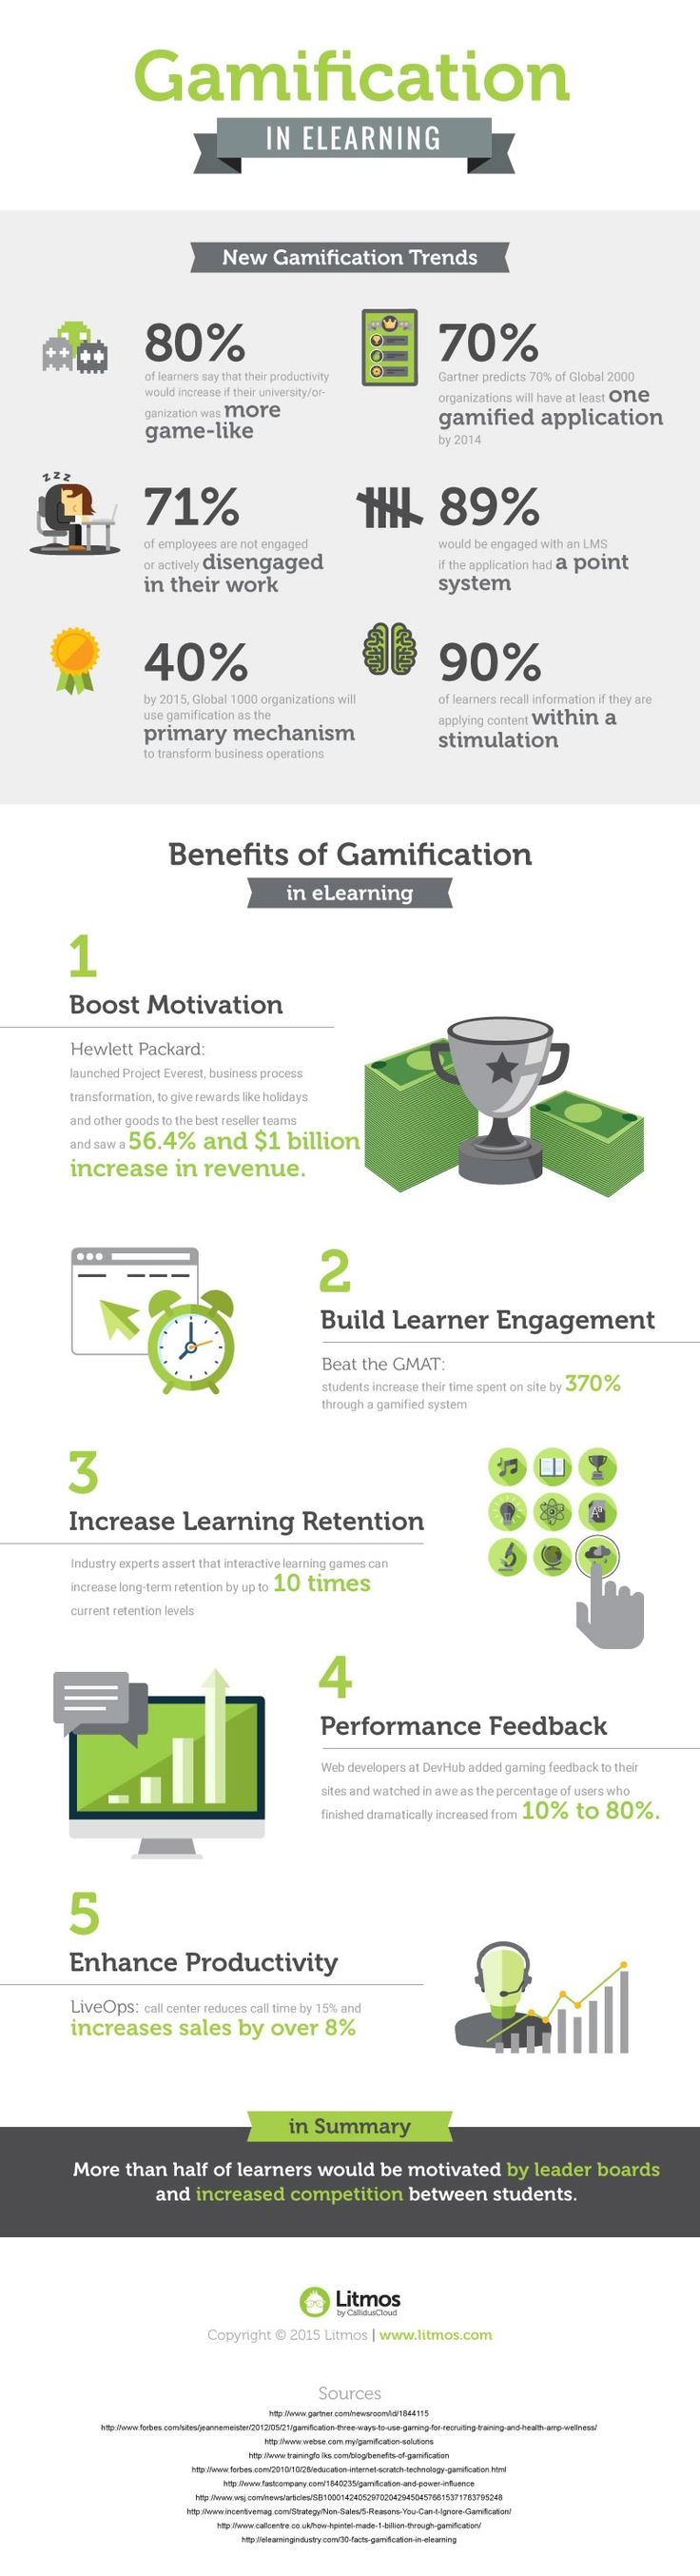 Gamification in eLearning Infographic - http://elearninginfographics.com/gamification-elearning-infographic/